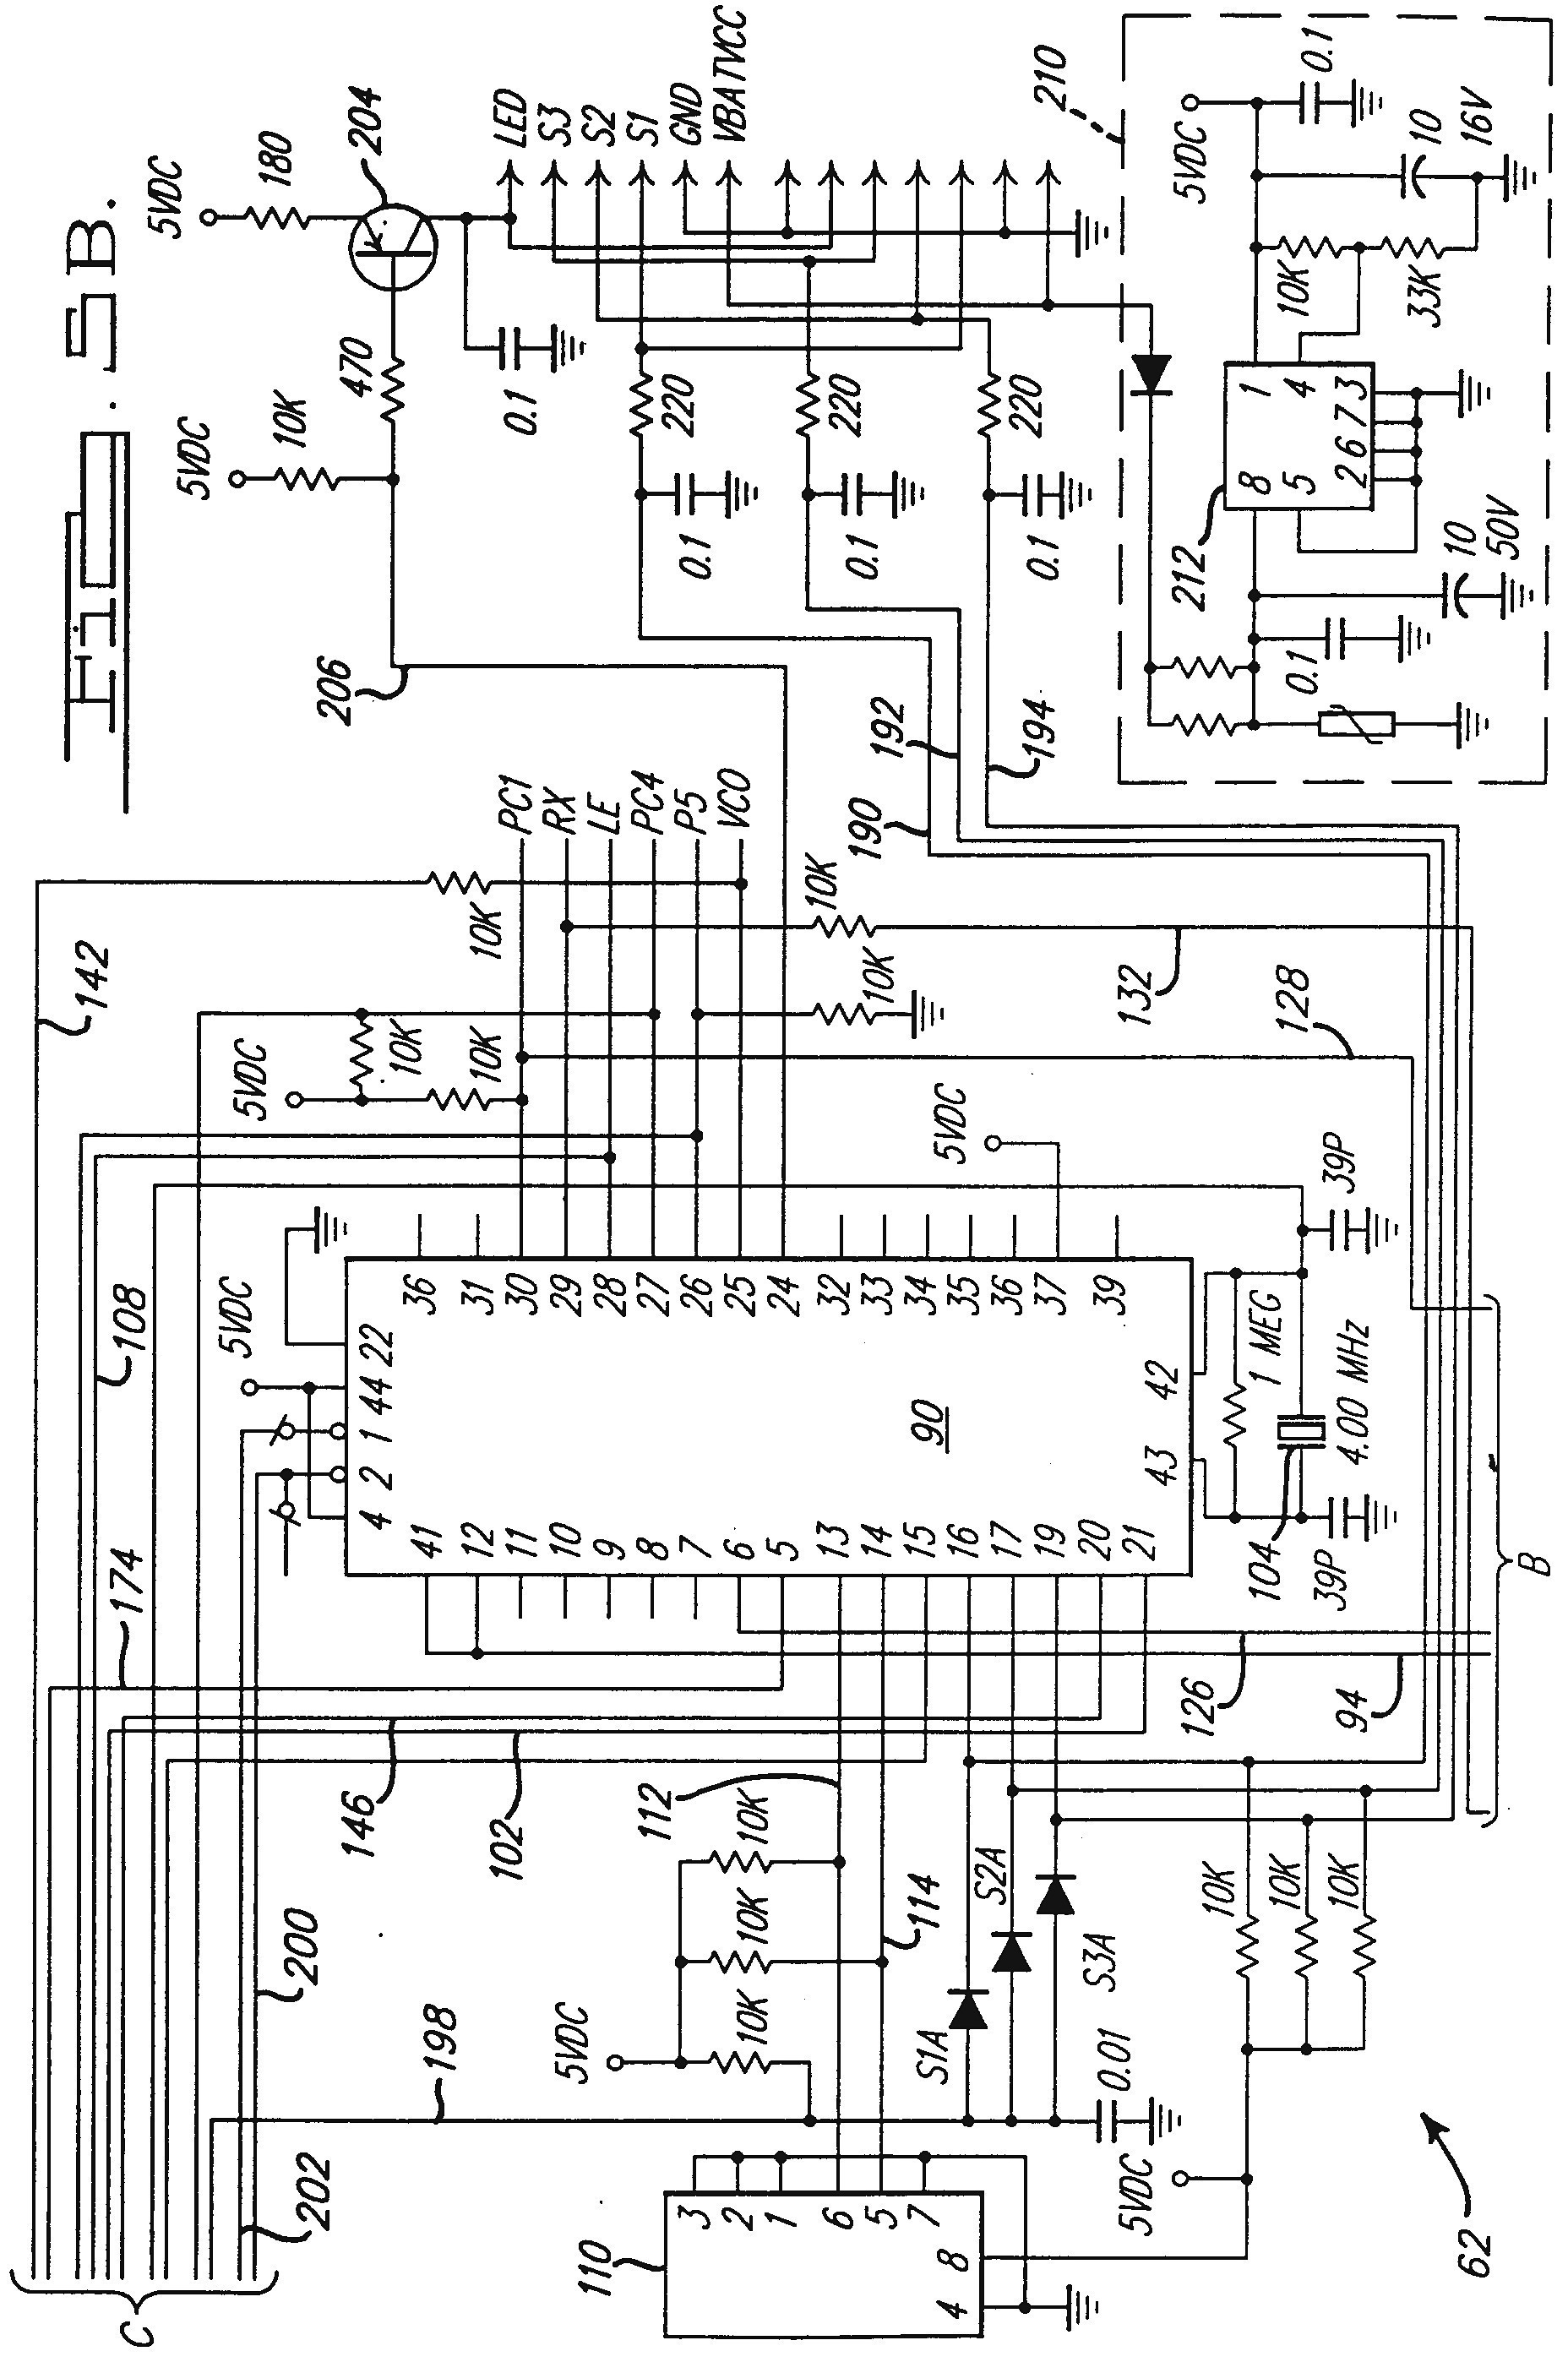 Carrier Motor Master Wiring Diagram Free Picture